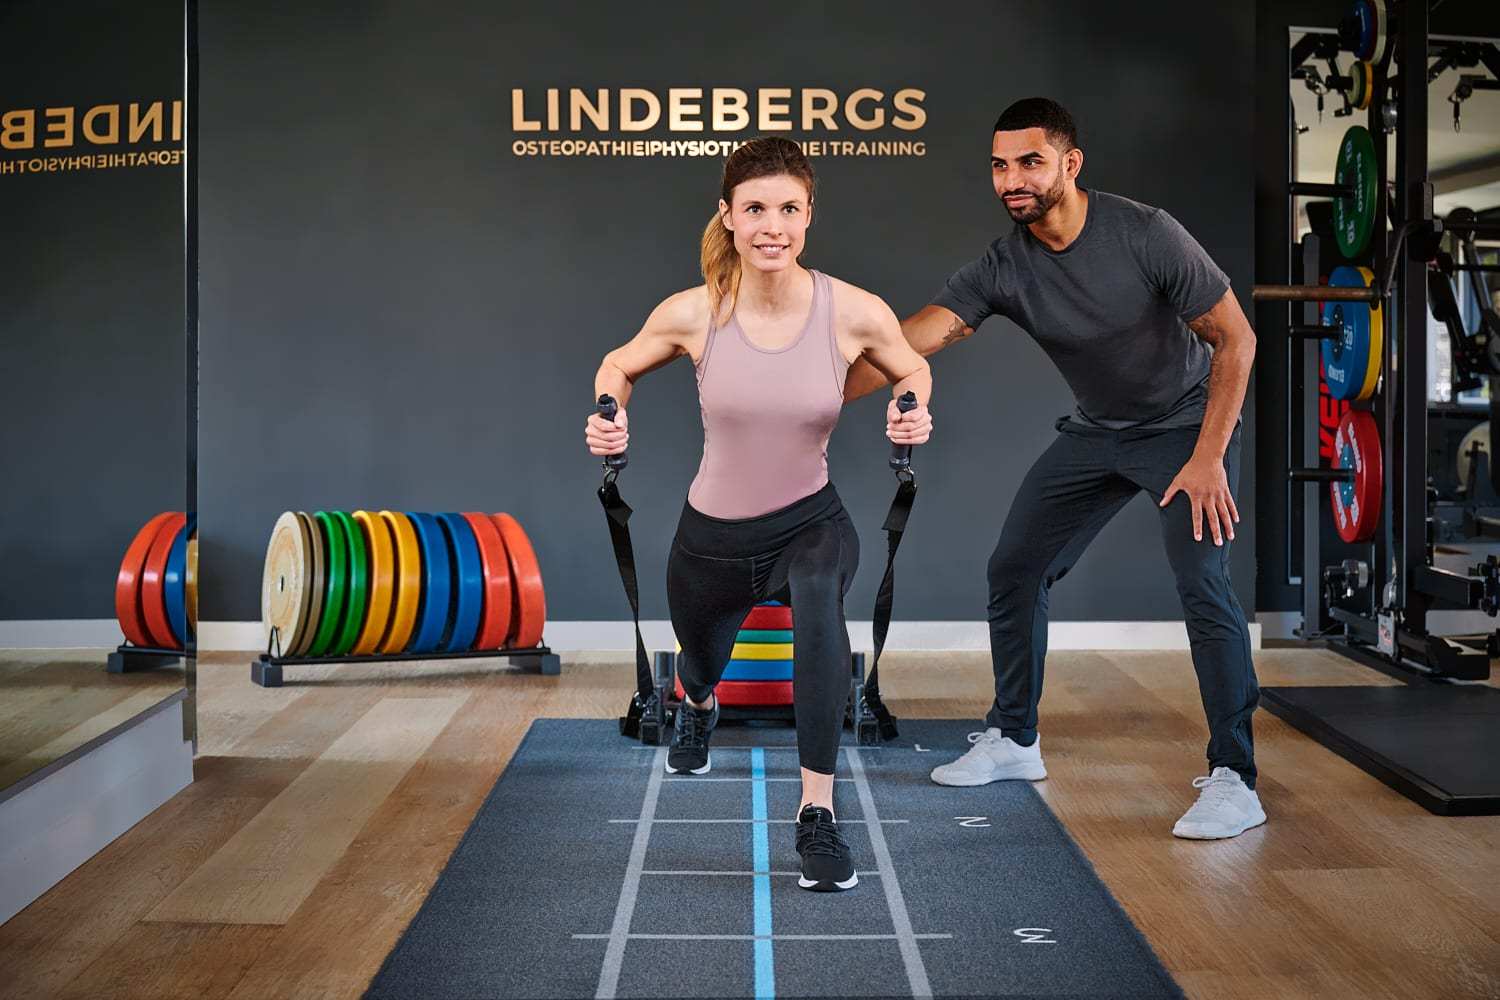 LINDEBERGS_LOW_RES_Training_photographer_gunnar_menzel_3355